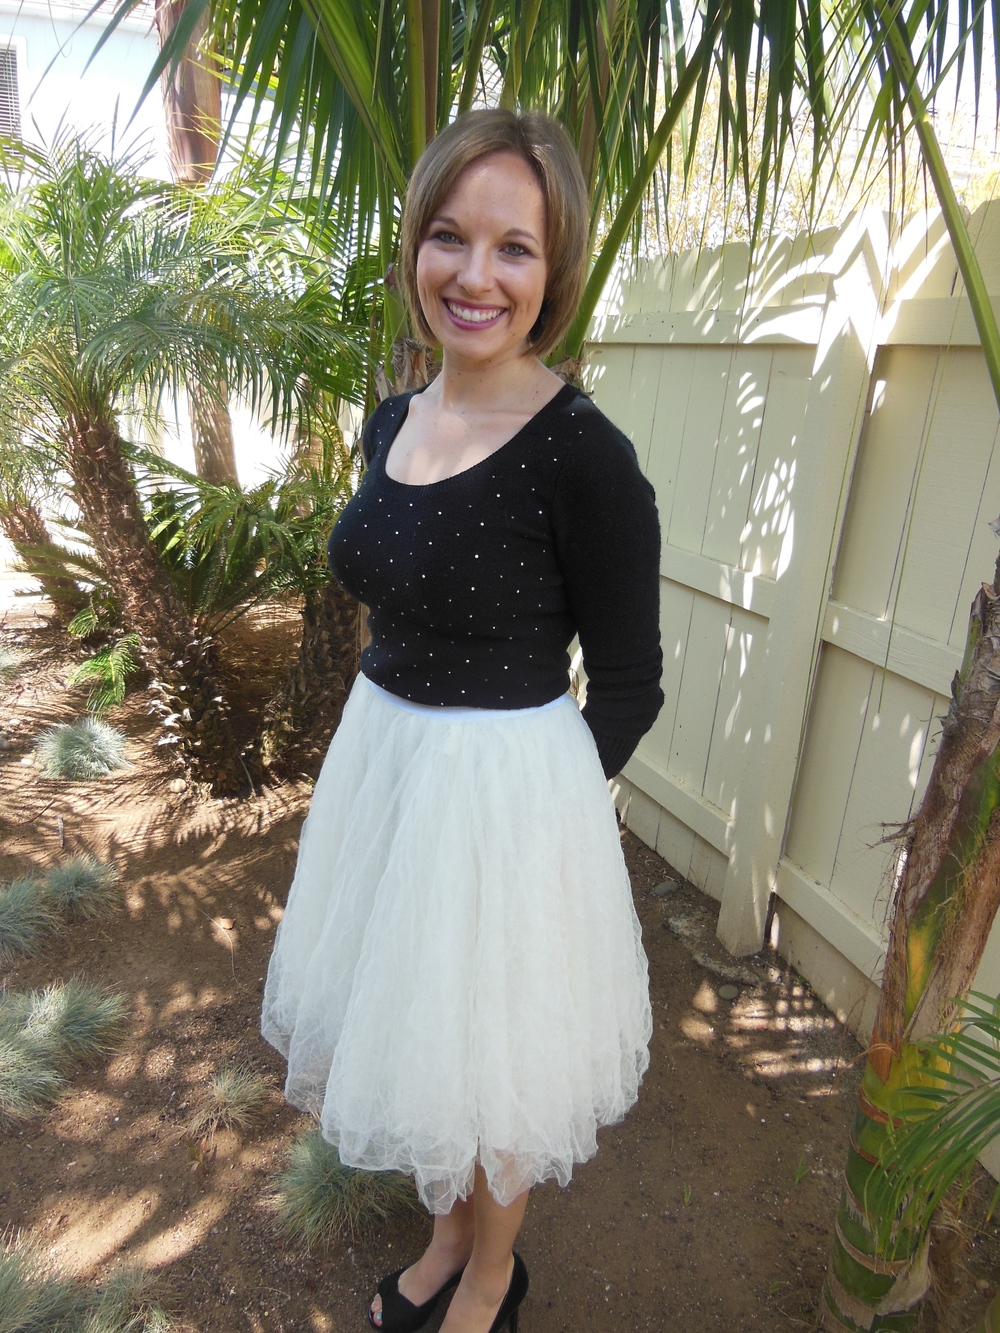 Whipped this skirt up in a day with the Cotton + Curls blog tutorial!